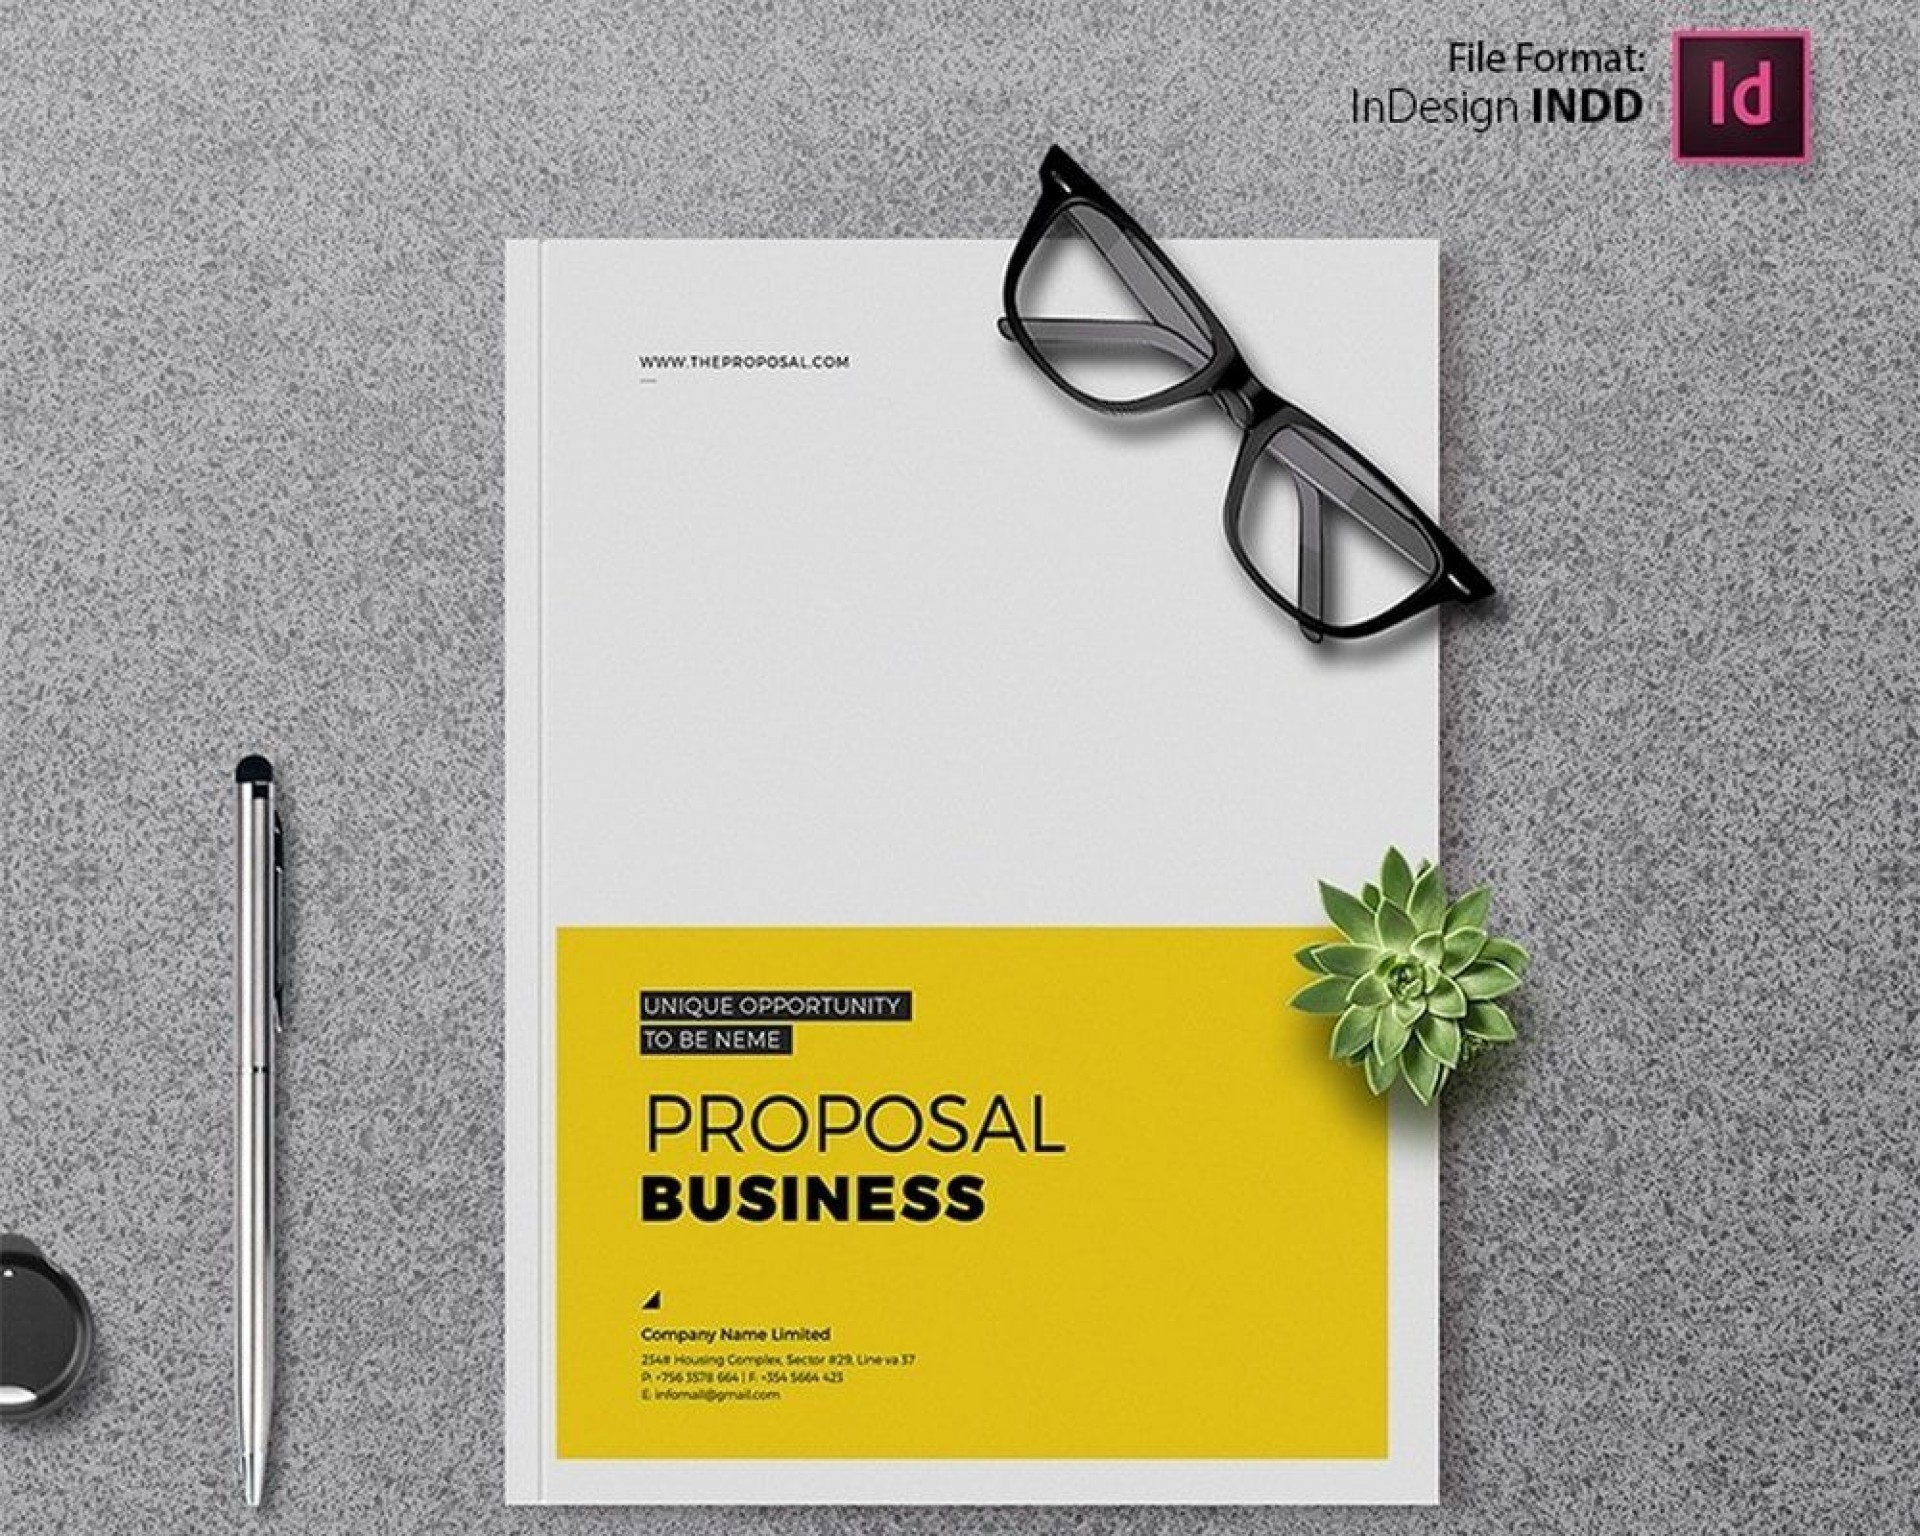 006 Fearsome Photoshop Brochure Design Template Free Download High Resolution 1920